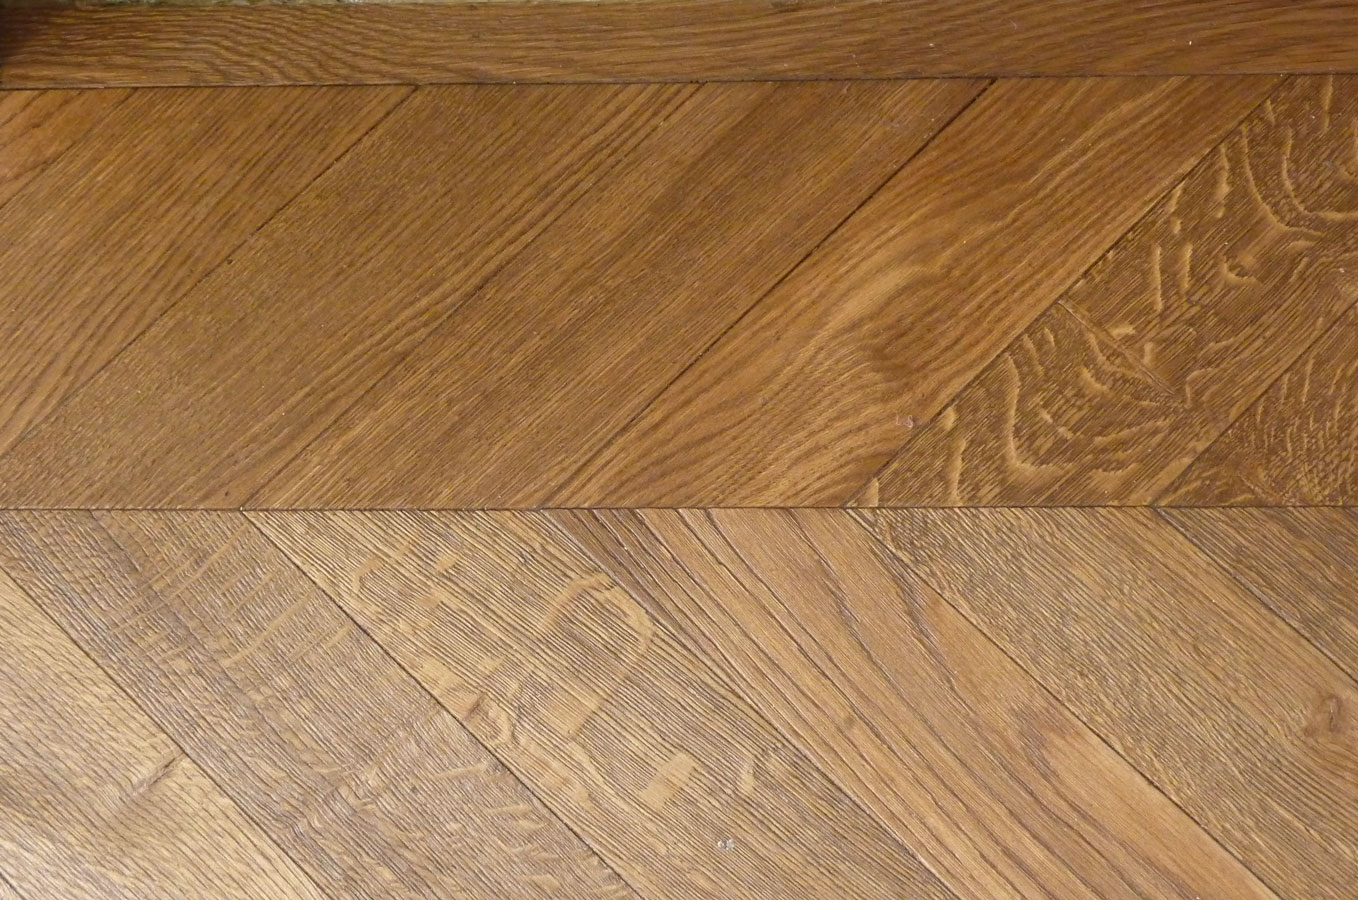 Parquet floor in solid oak